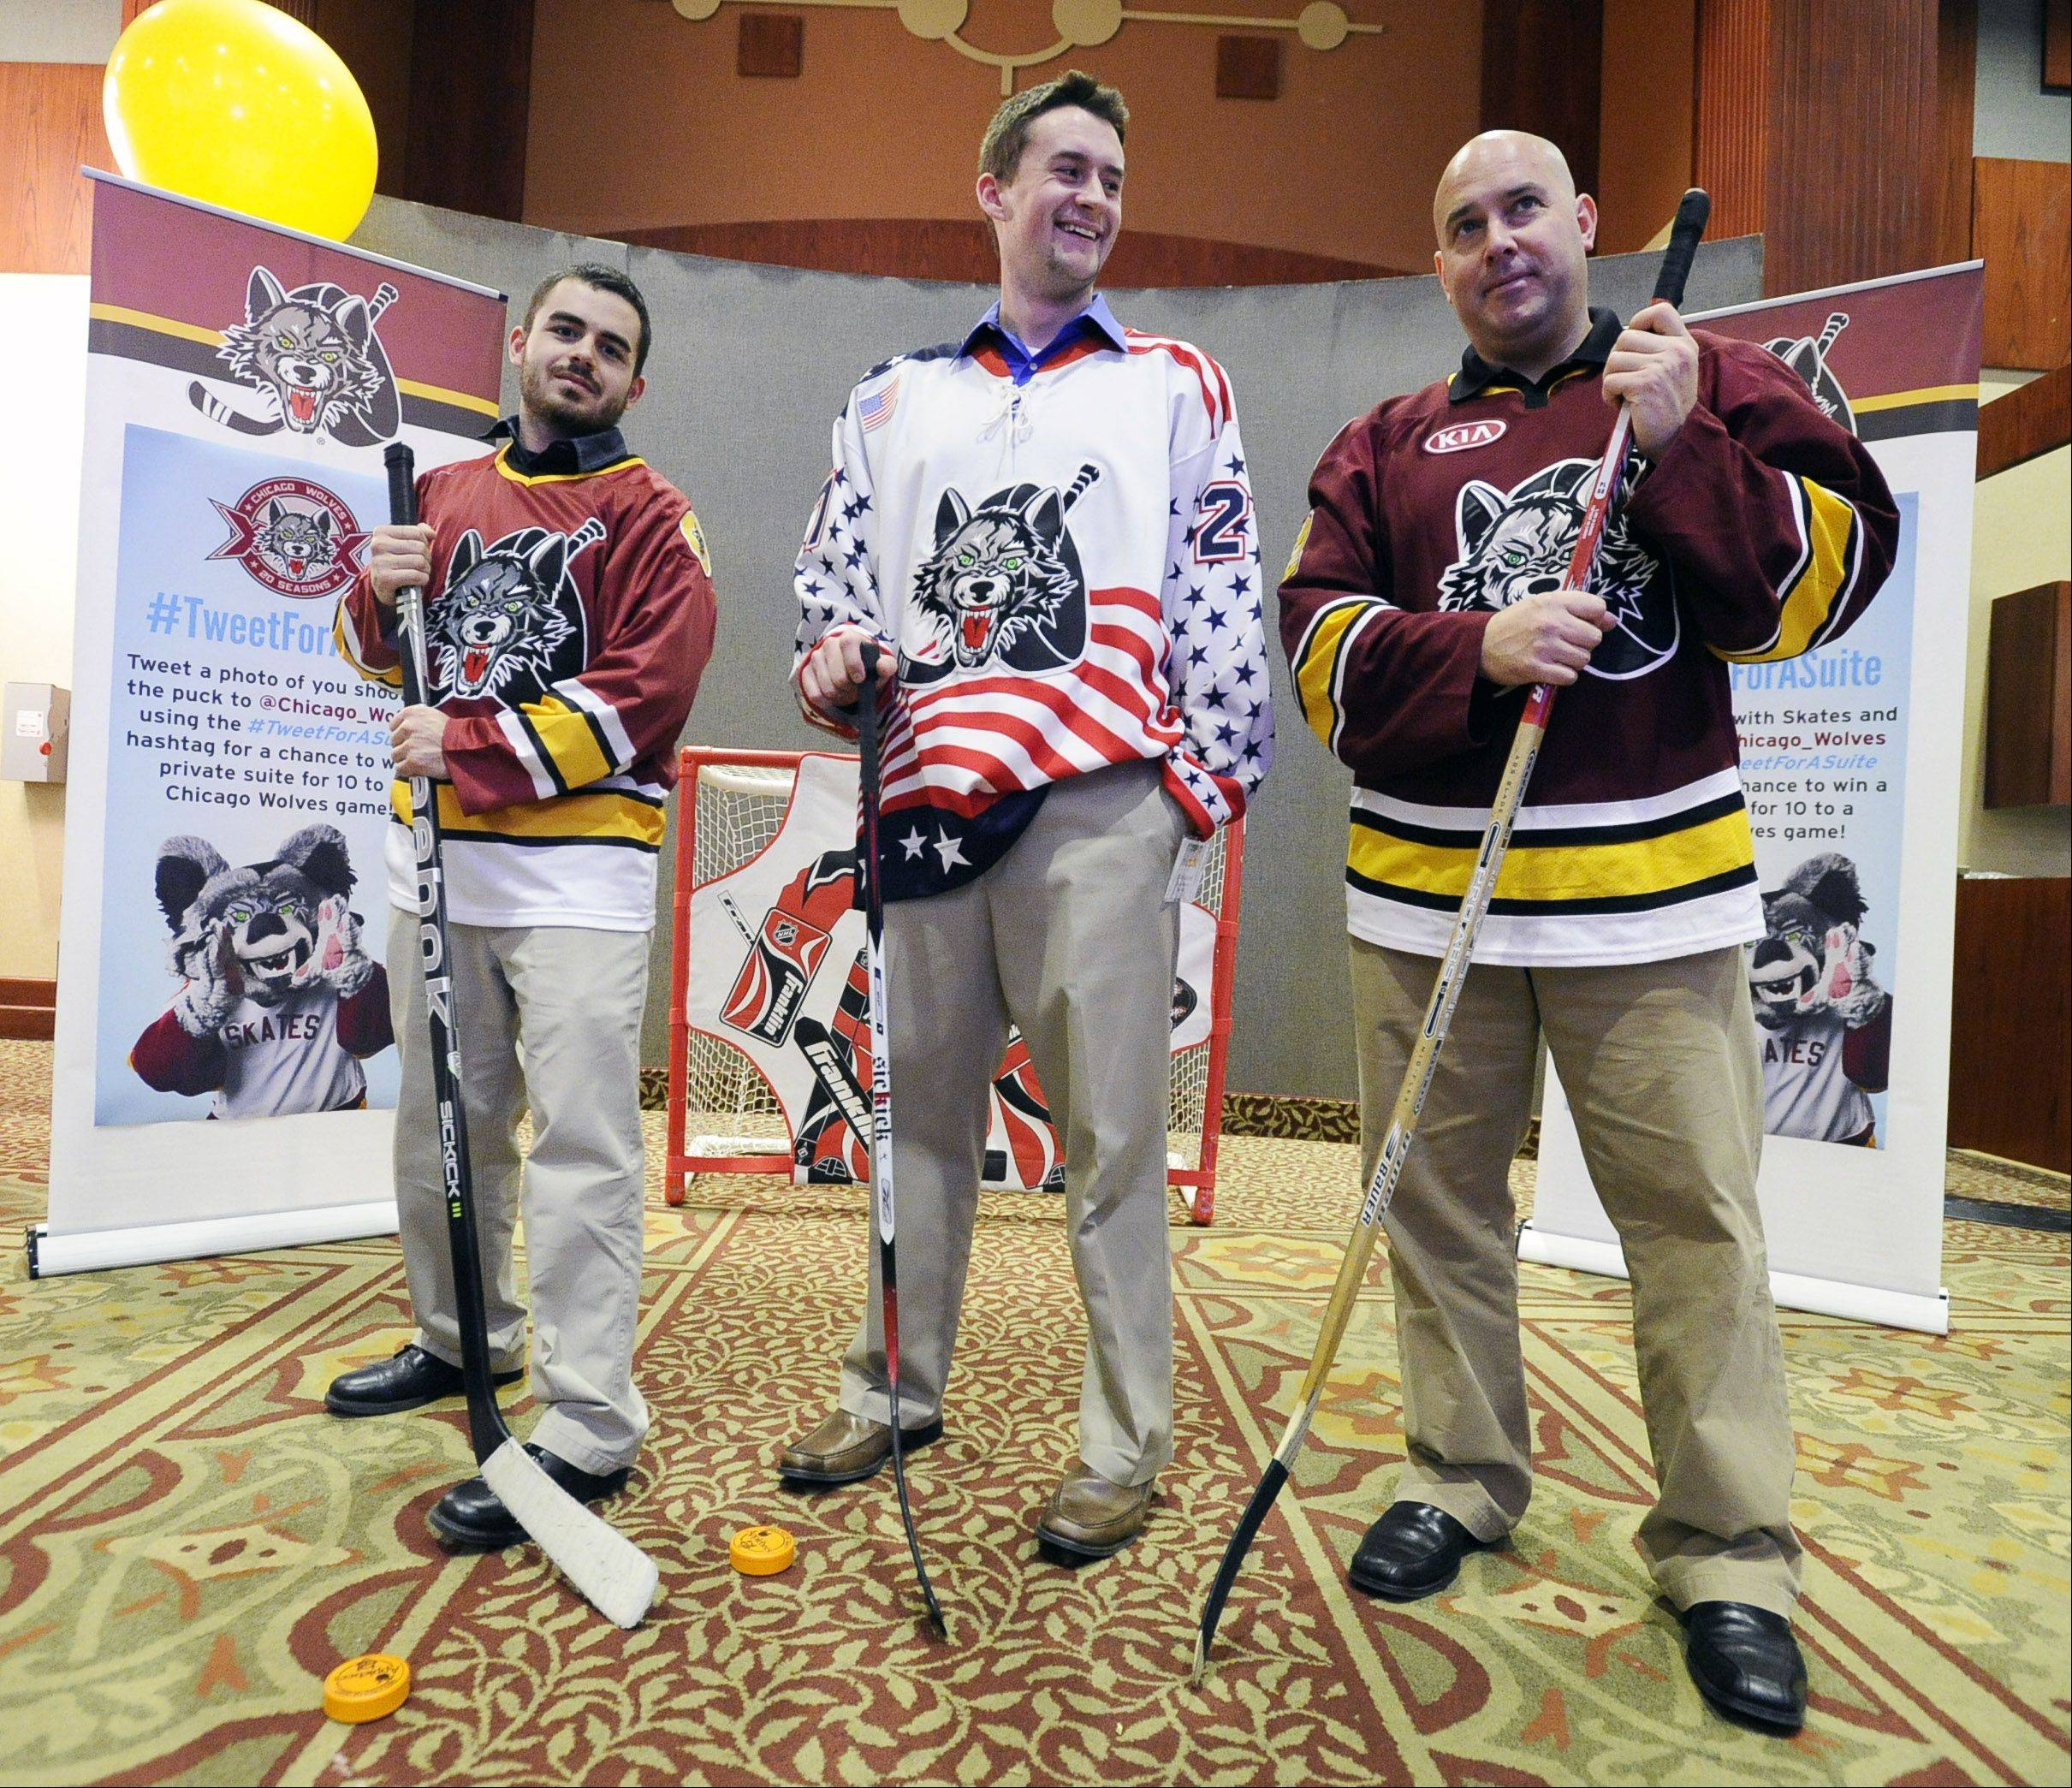 Ricky Campione and Mike Czopek, both sales representatives from the Chicago Wolves, and Dave Pawelek, senior director of strategic alliances, show off their hockey skills Thursday at Northwest Hospitality Expo 2013 at the Meadows Club in Rolling Meadows.